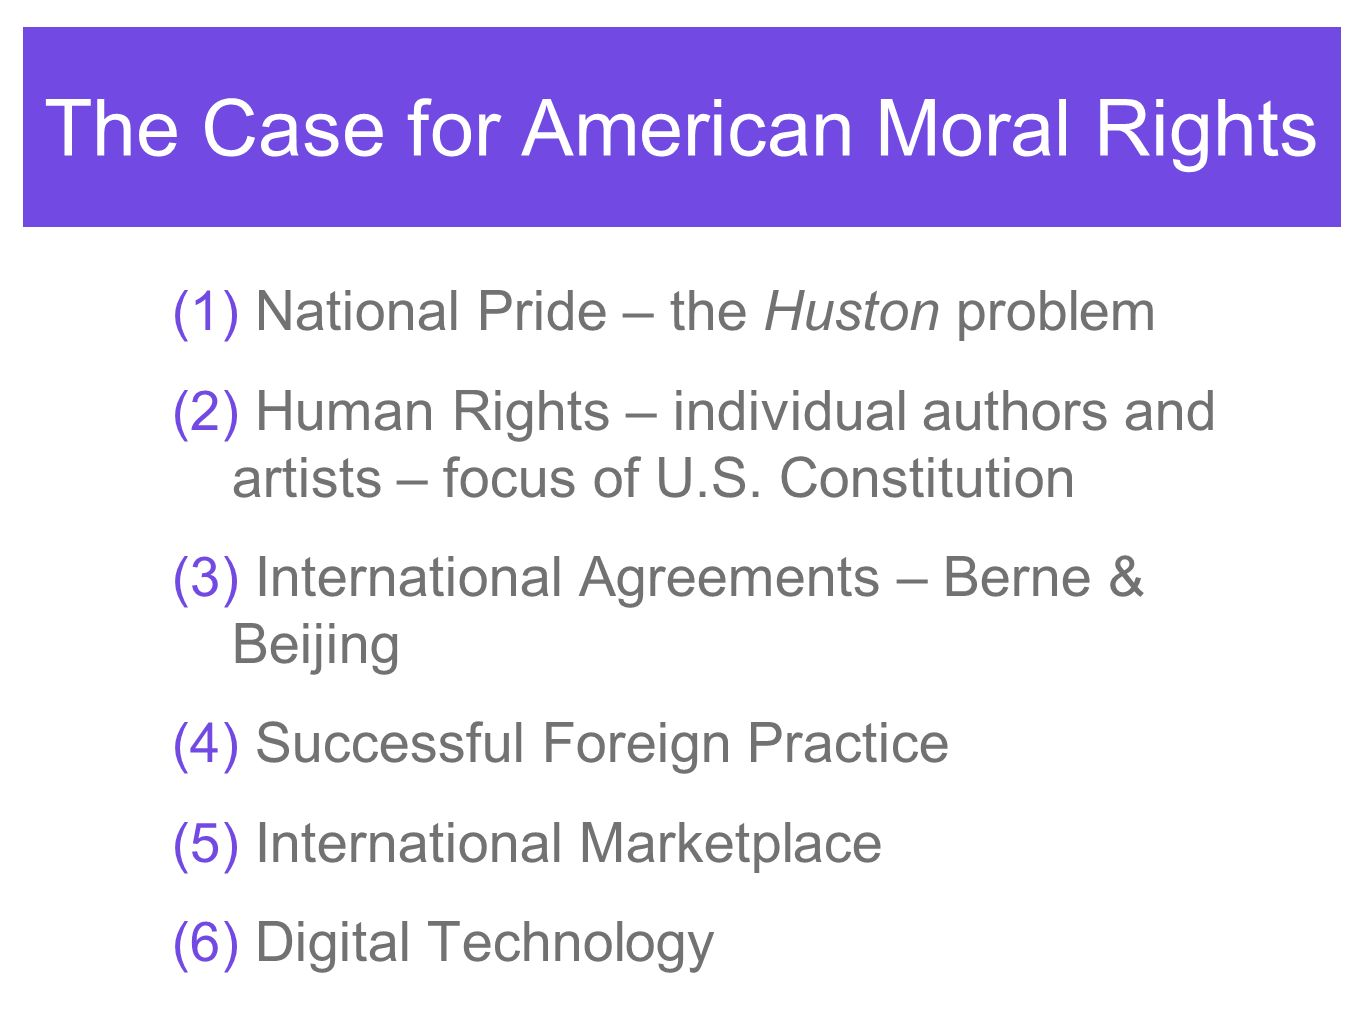 The Case for American Moral Rights